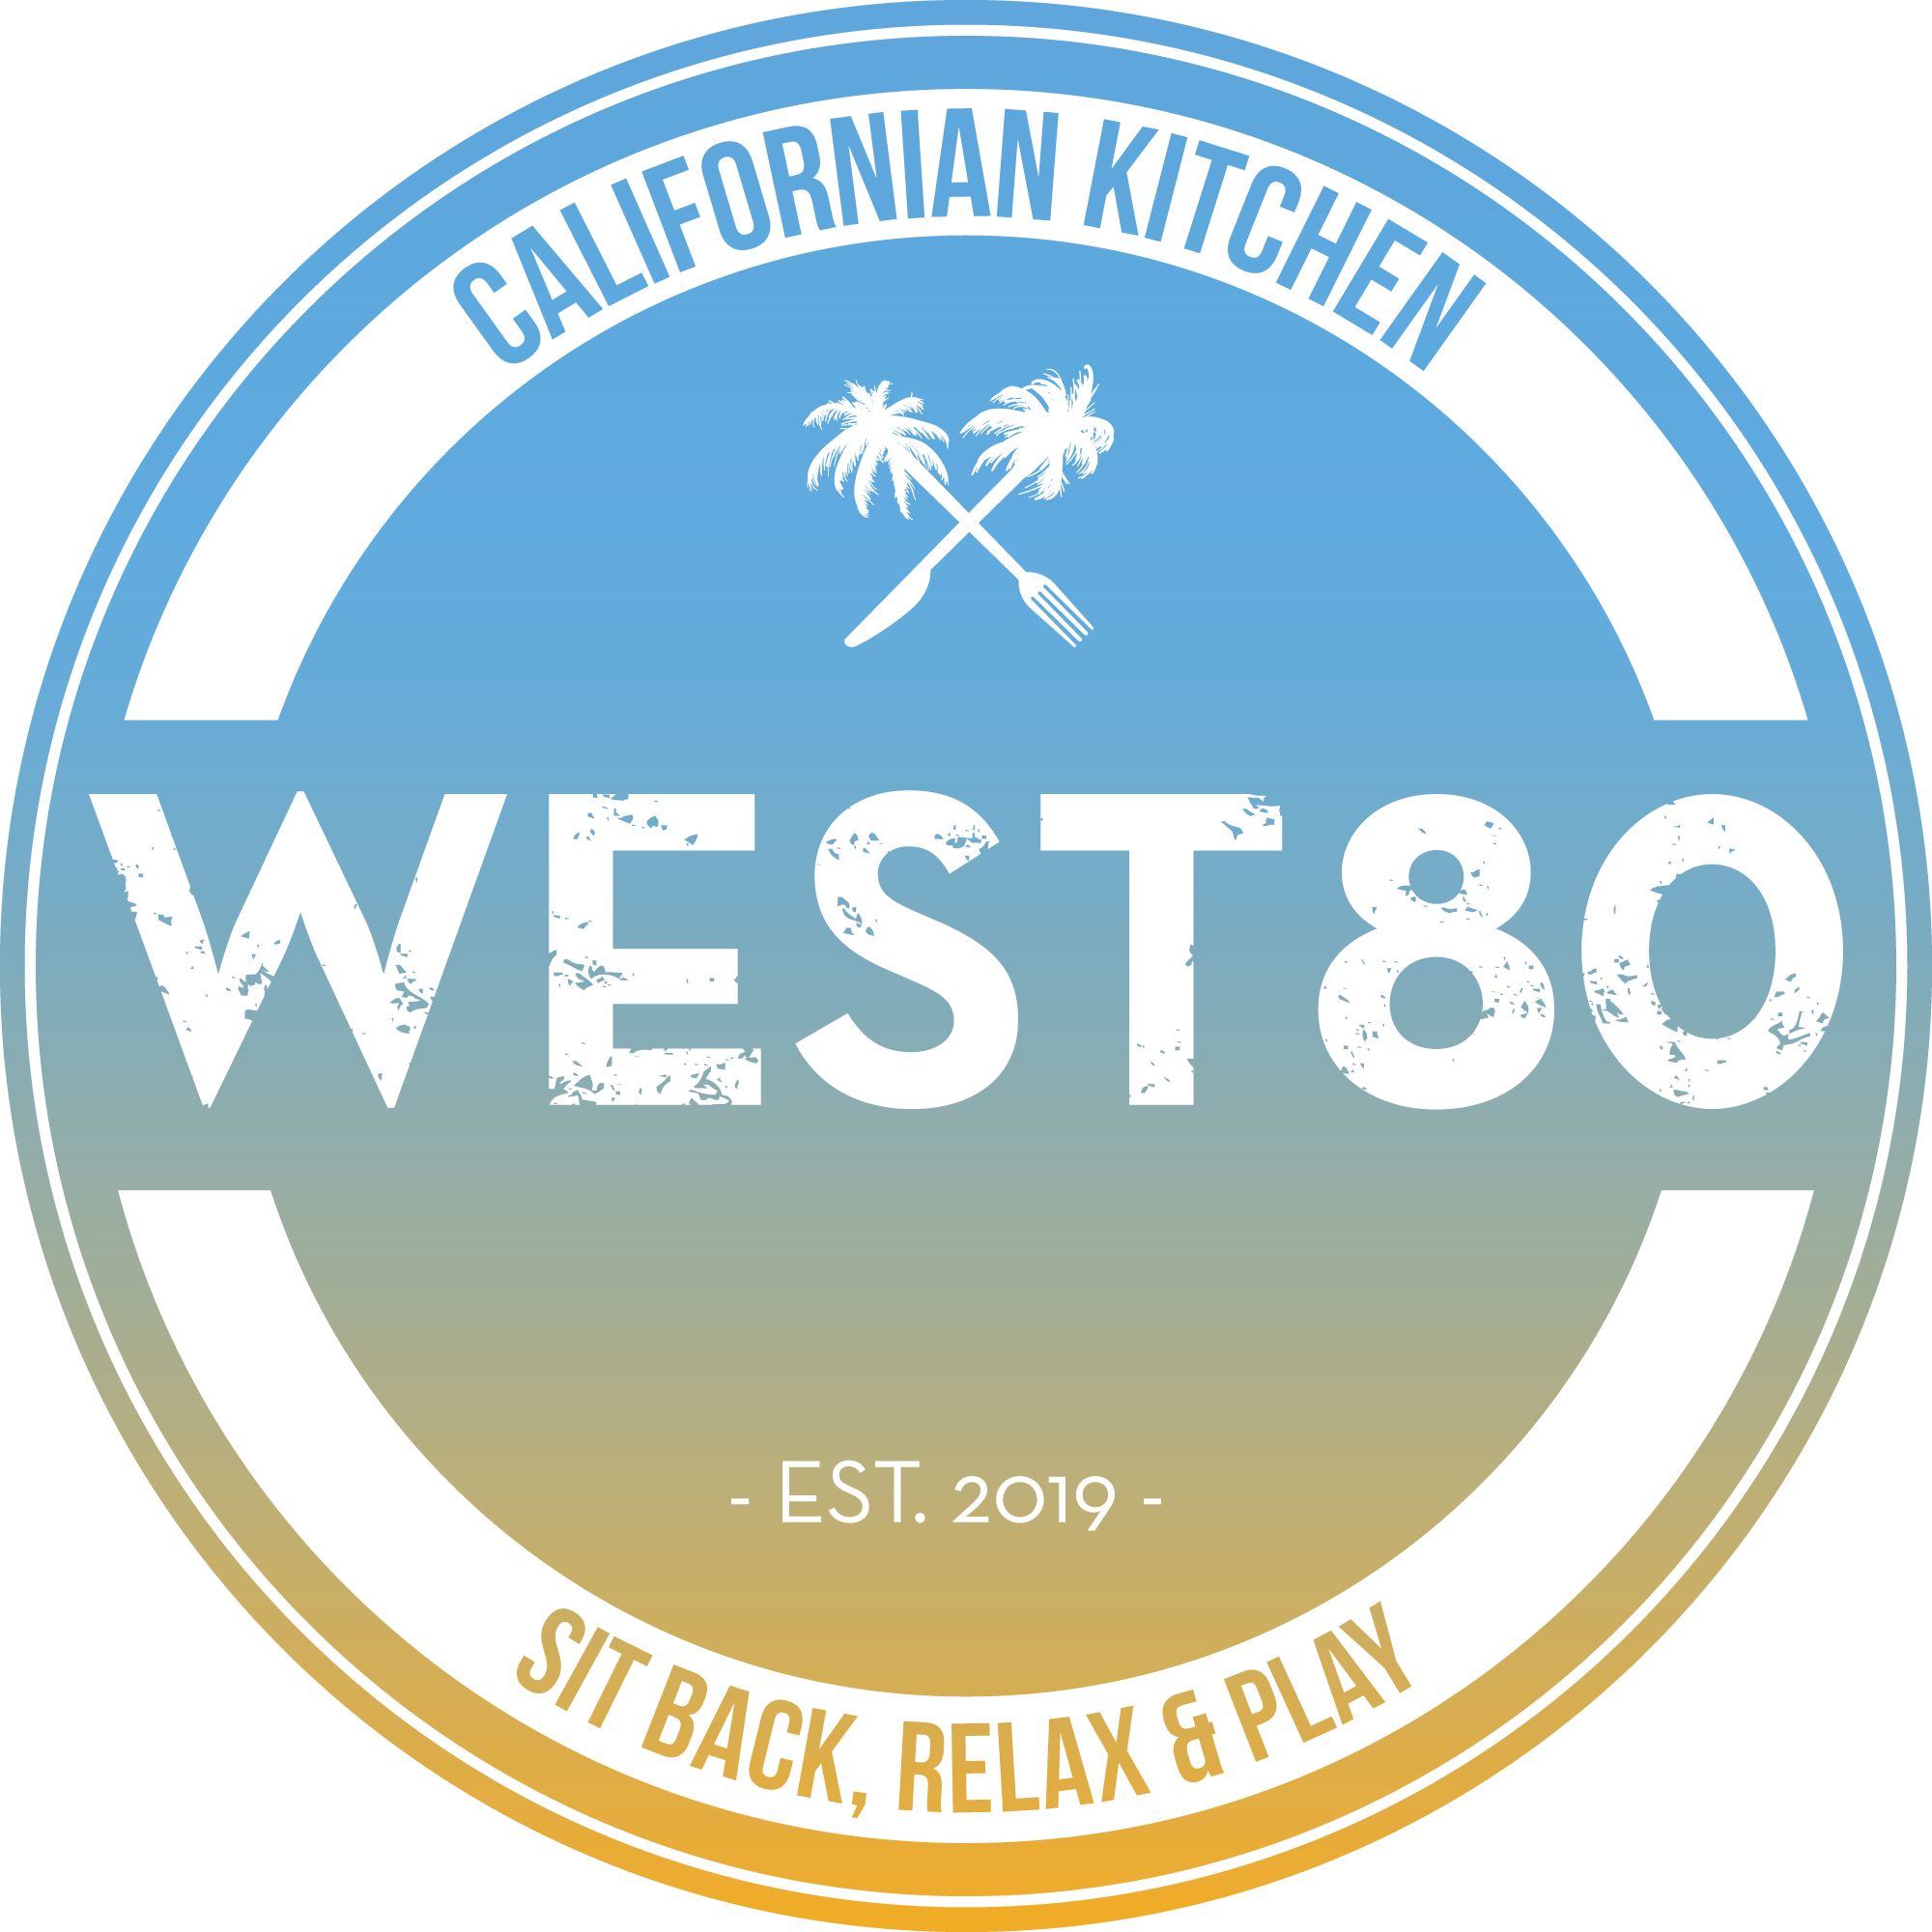 Restaurant WEST80 | Californian Kitchen